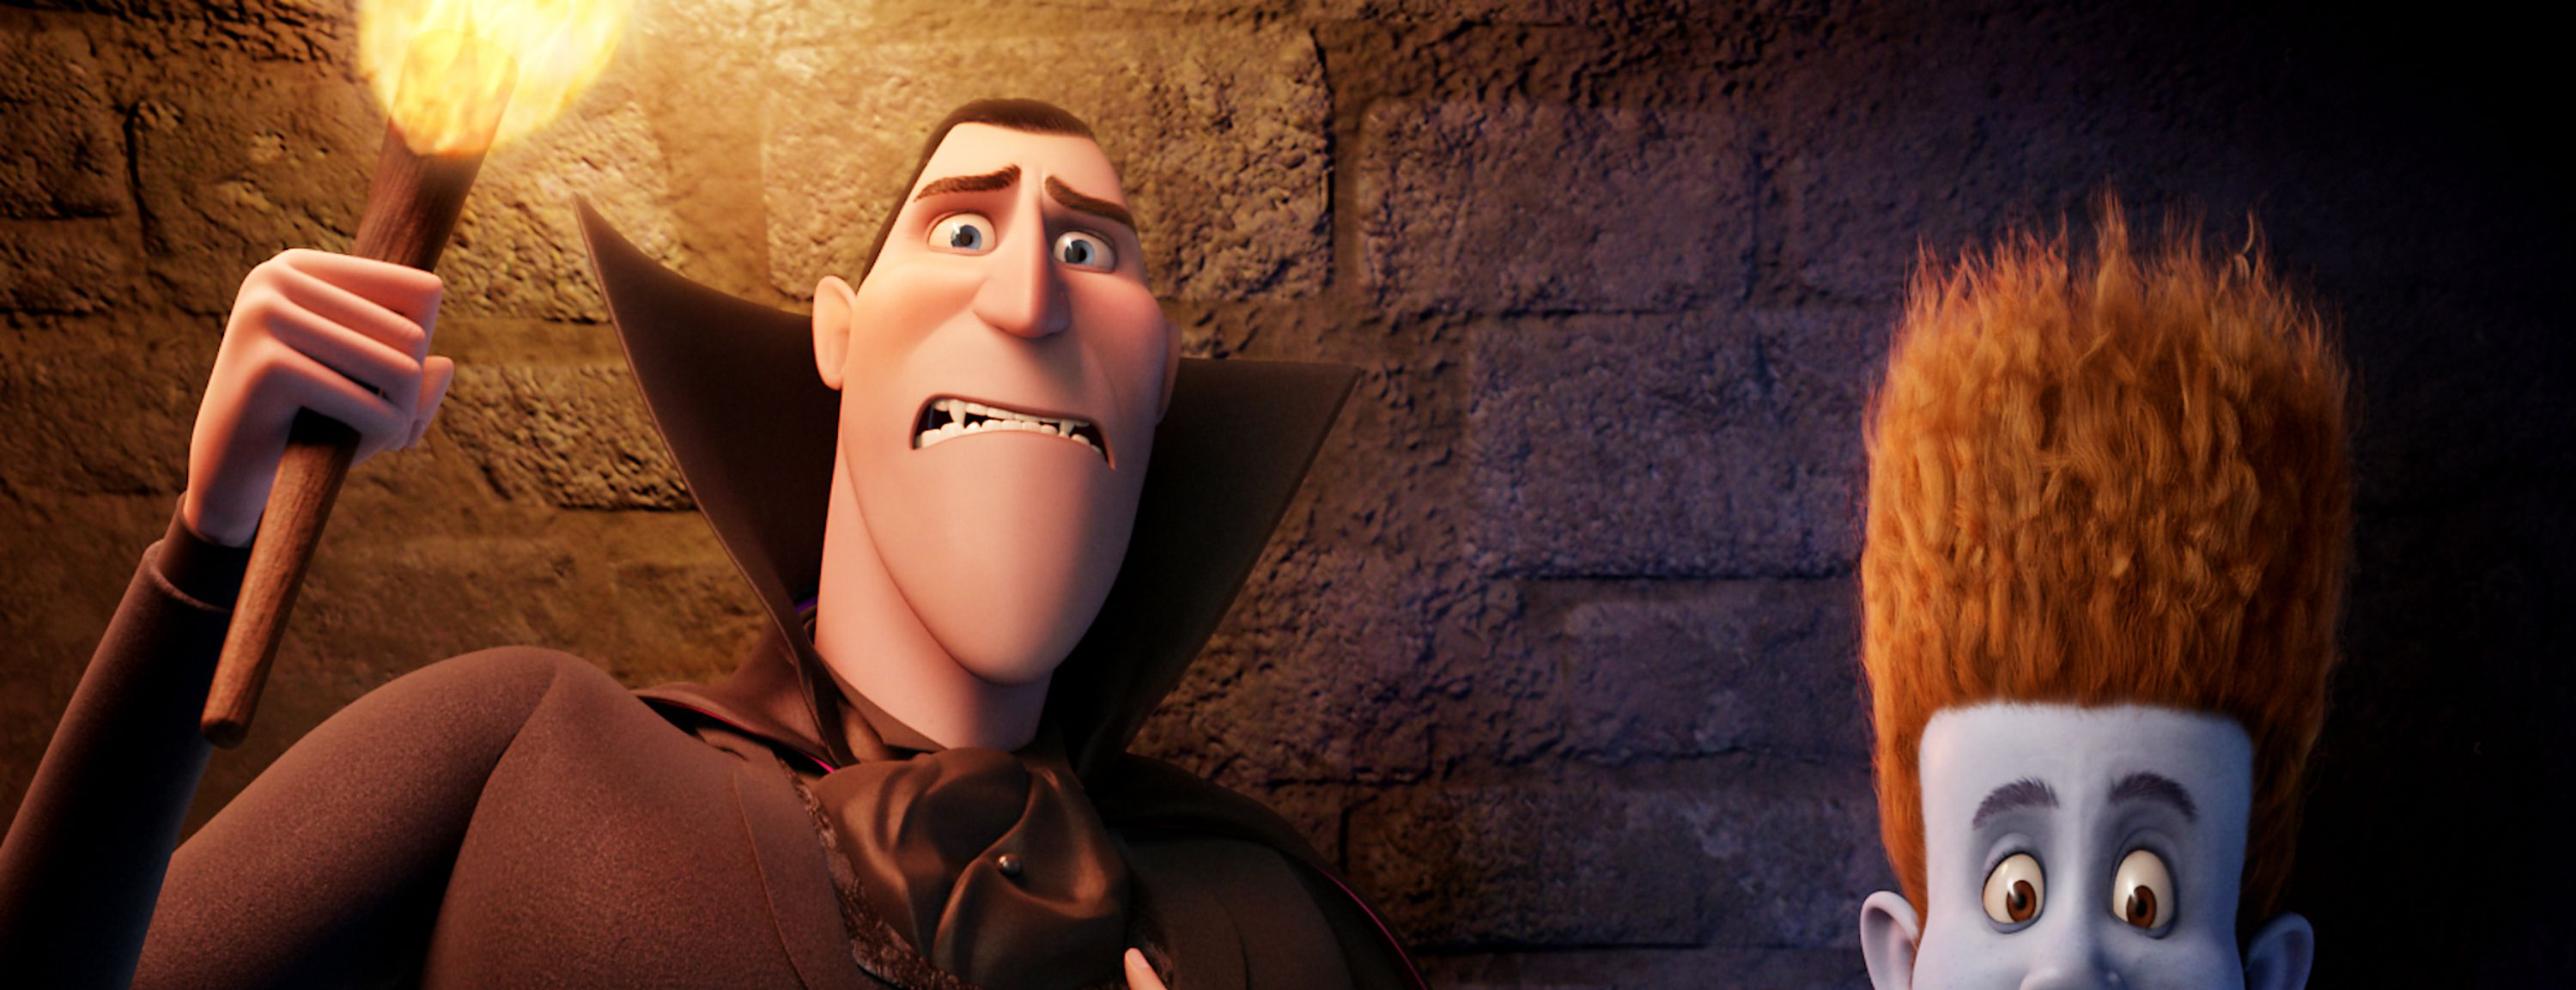 An image from Hotel Transylvania